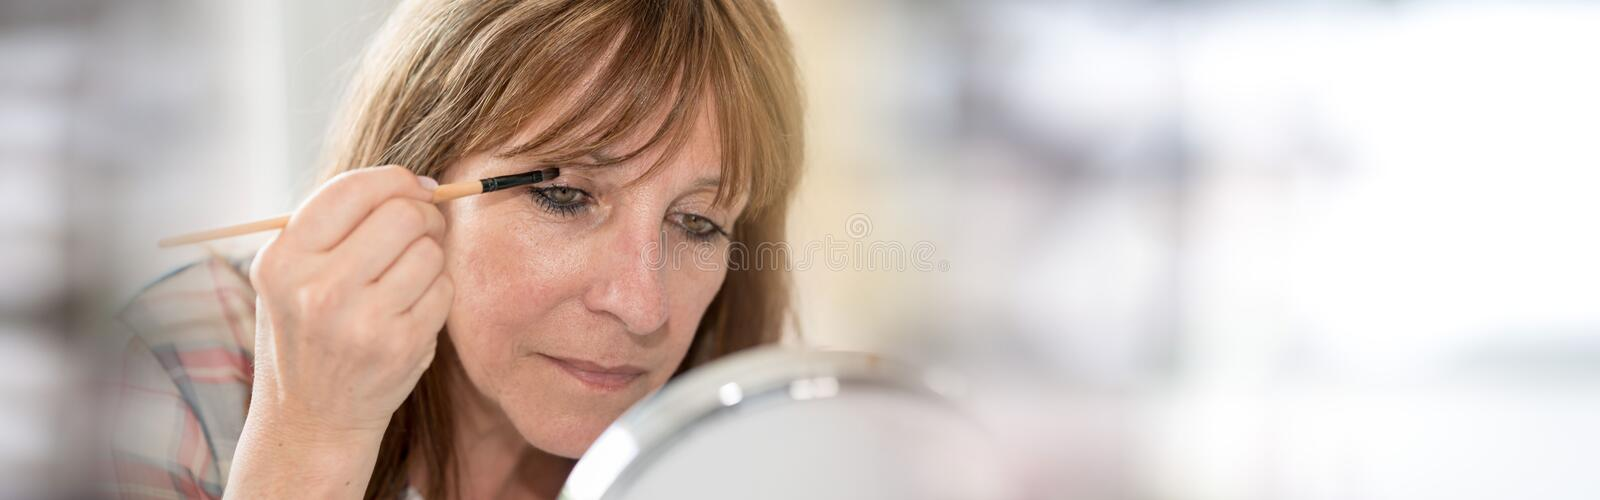 Woman applying eyeshadow powder royalty free stock images